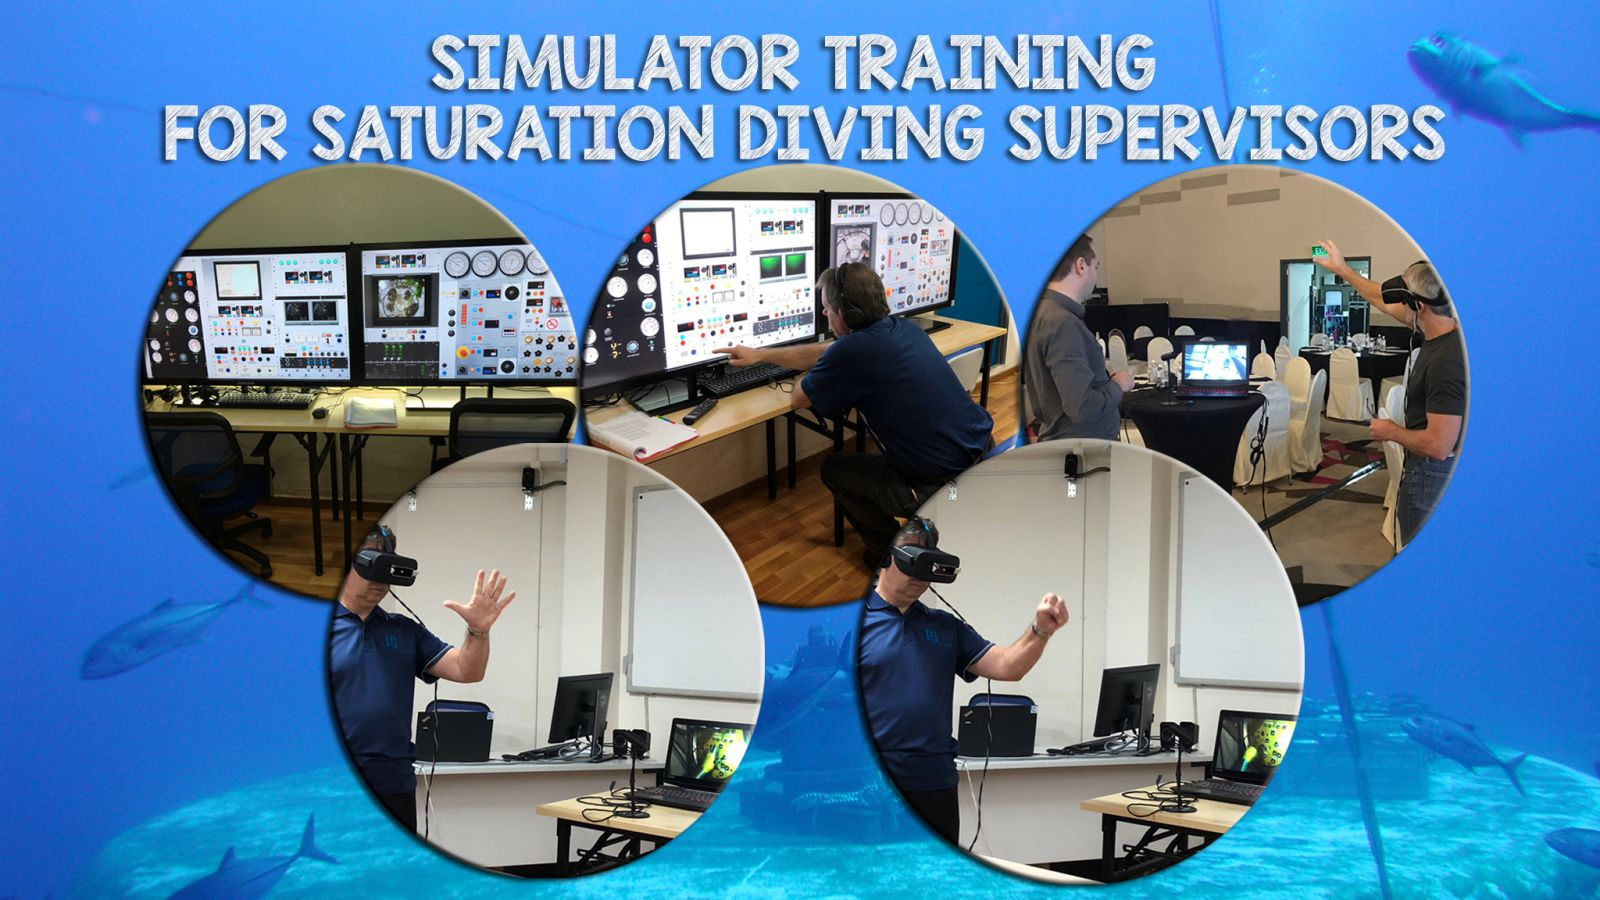 New Launch: Simulator Training for Saturation Diving Supervisors